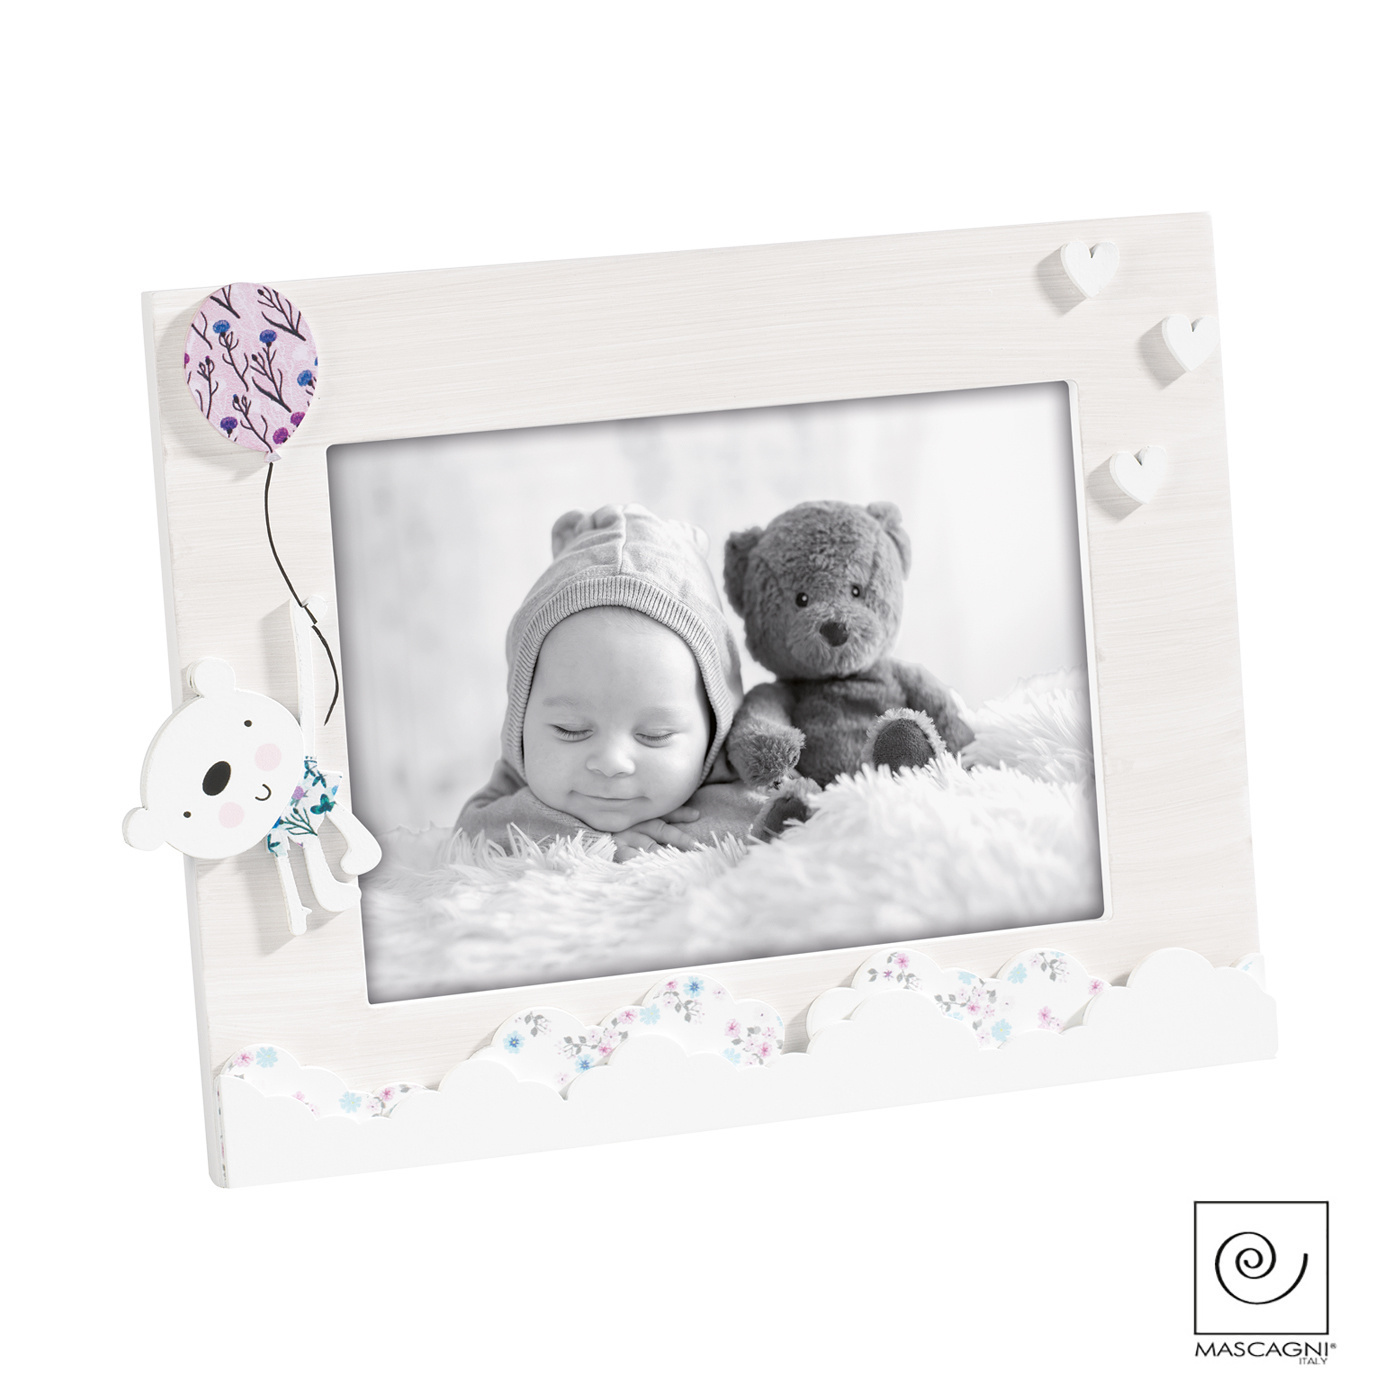 Art Mascagni A1082 PHOTO FRAME 13X18 - COL.PINK